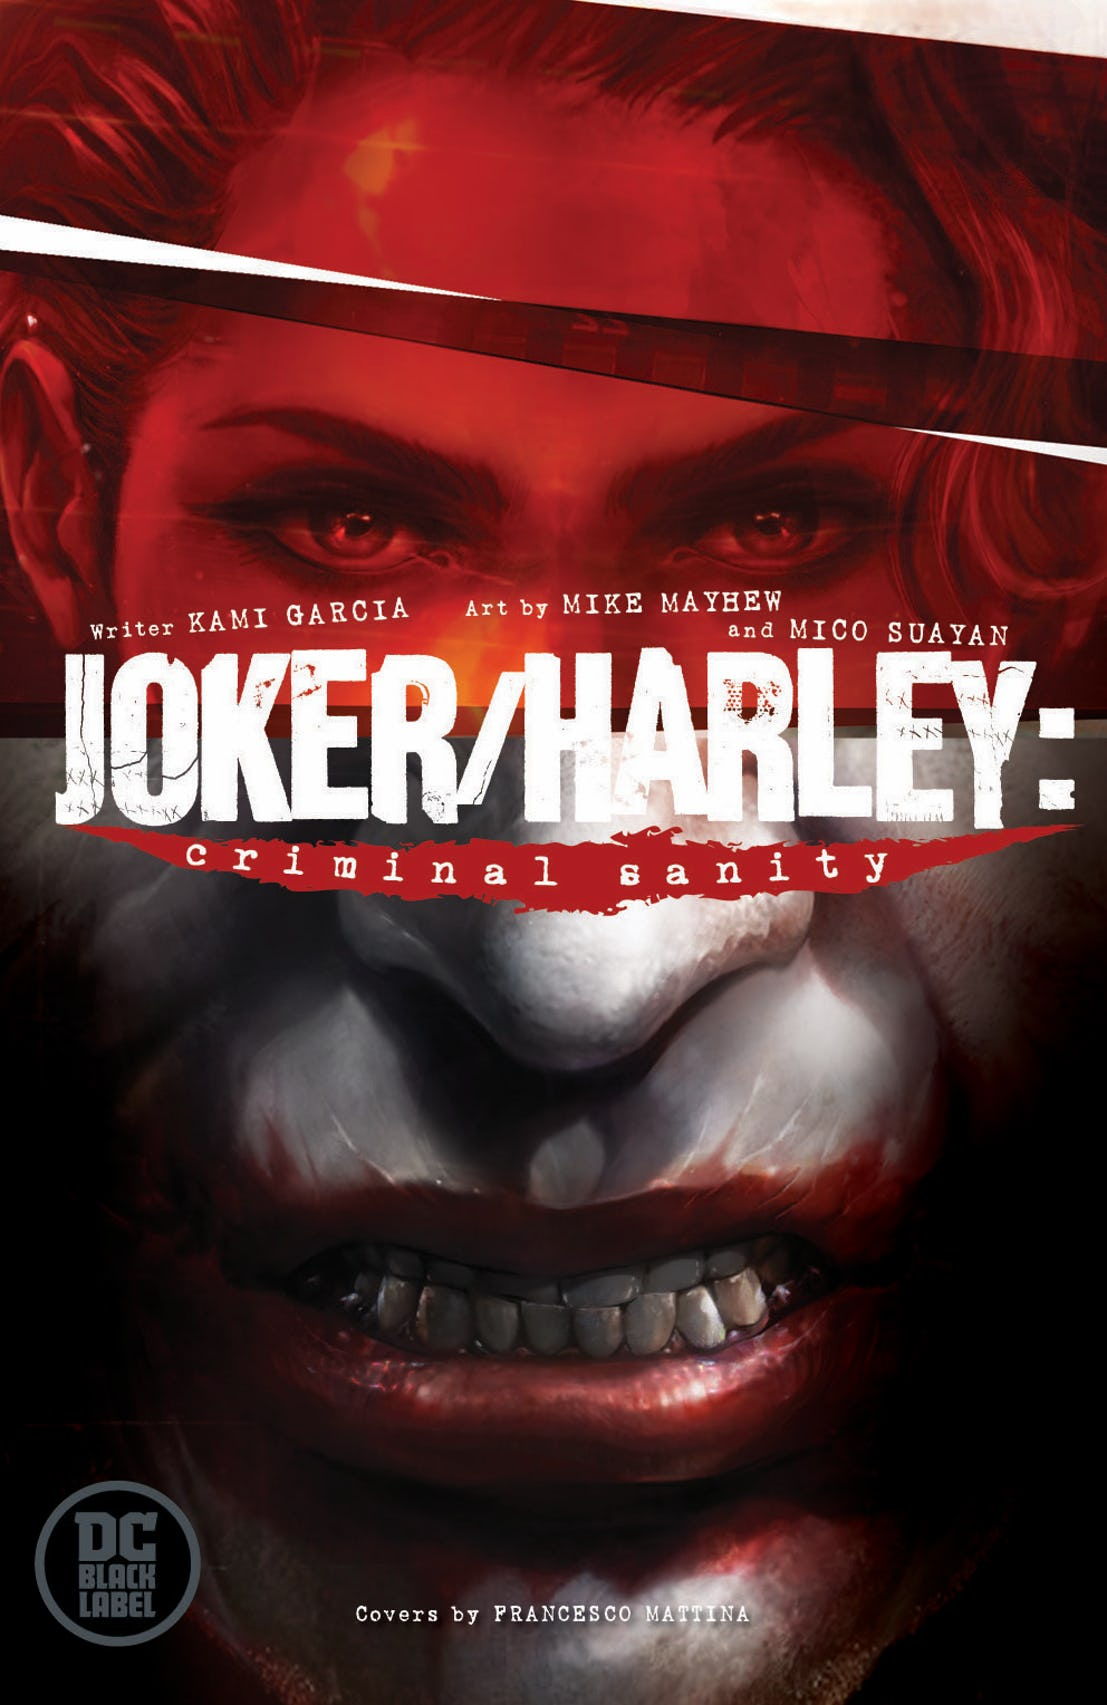 joker-harley-quinn-criminal-sanity-black-label-cover